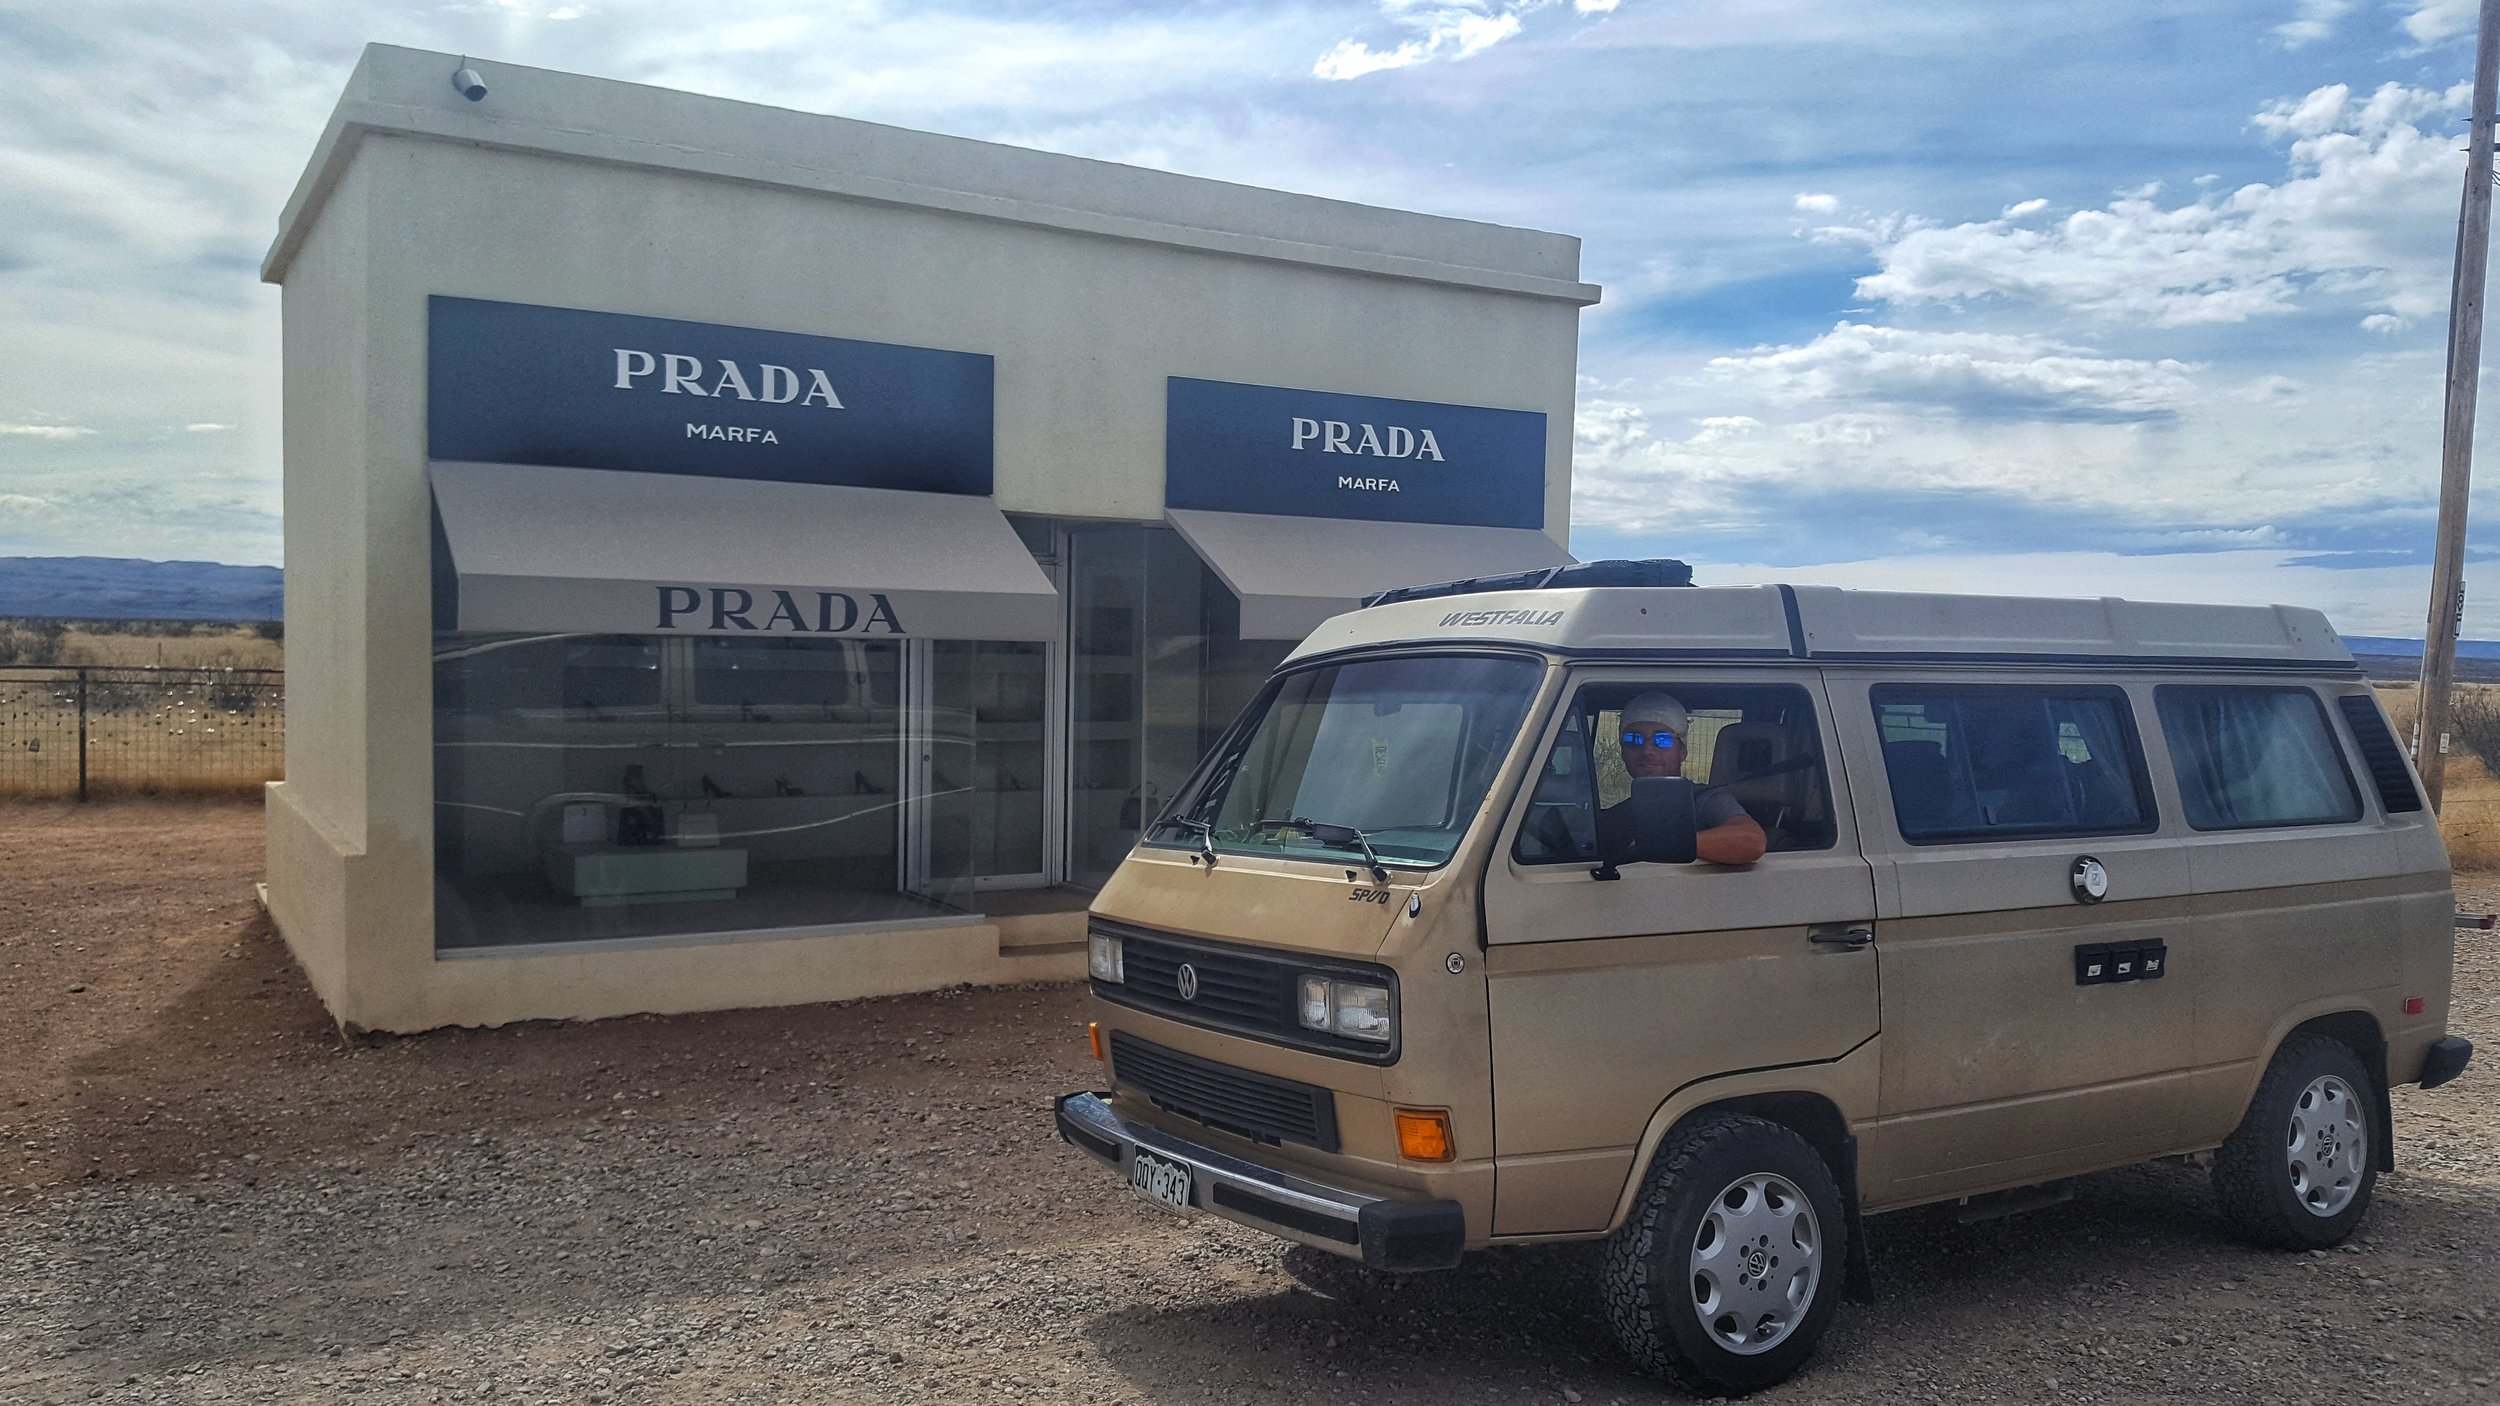 A quick stop at the Marfa Prada store.